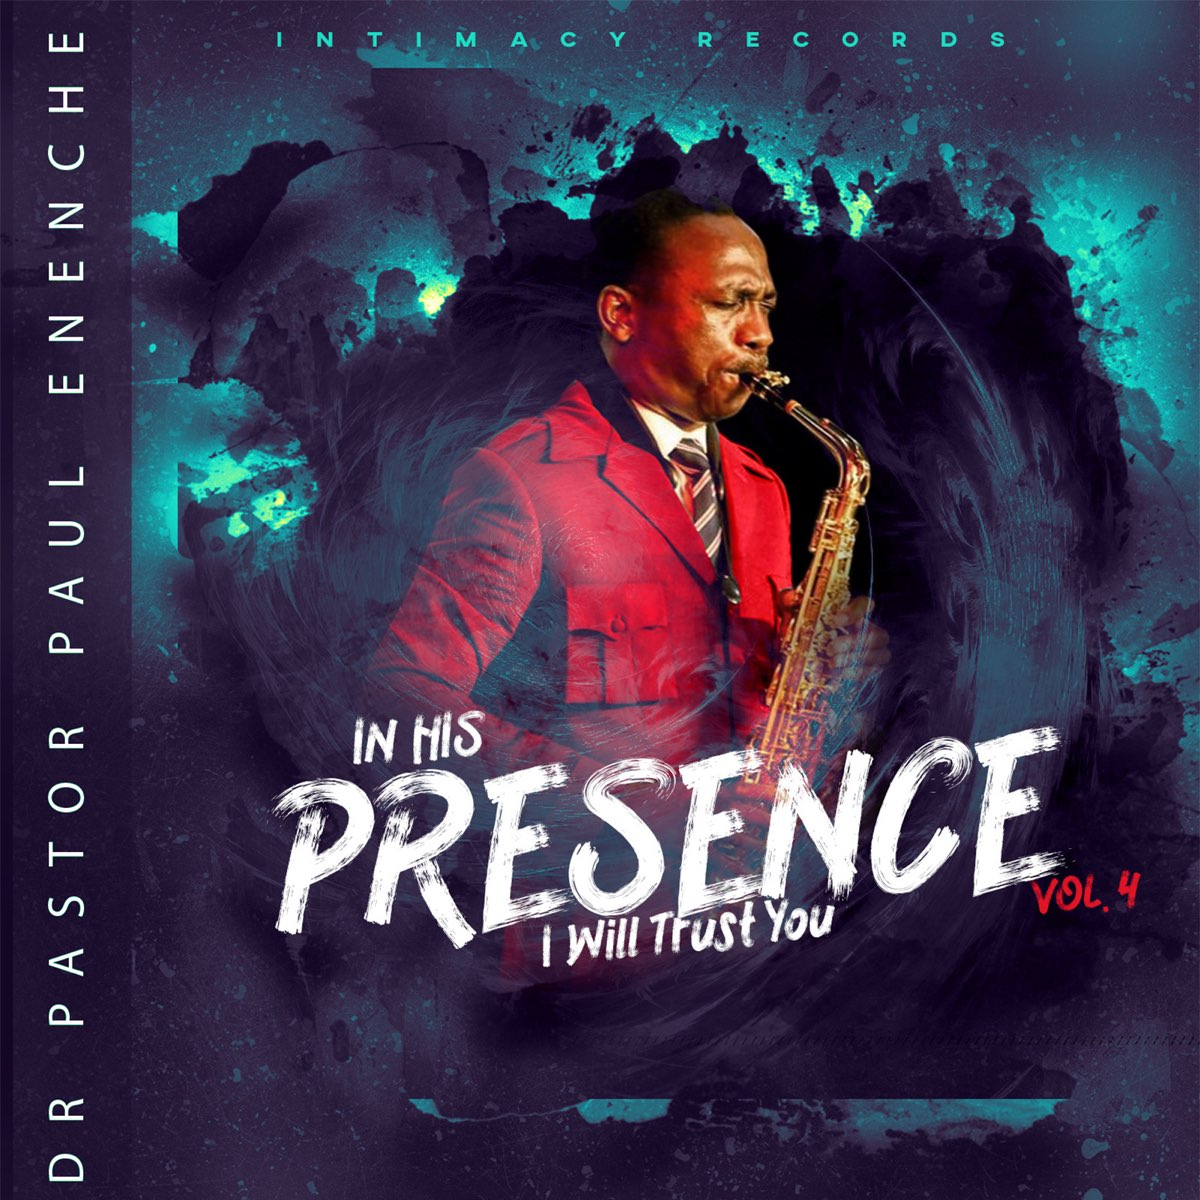 Dr Paul Enenche - In His Presence (I Will Trust You) Vol 4